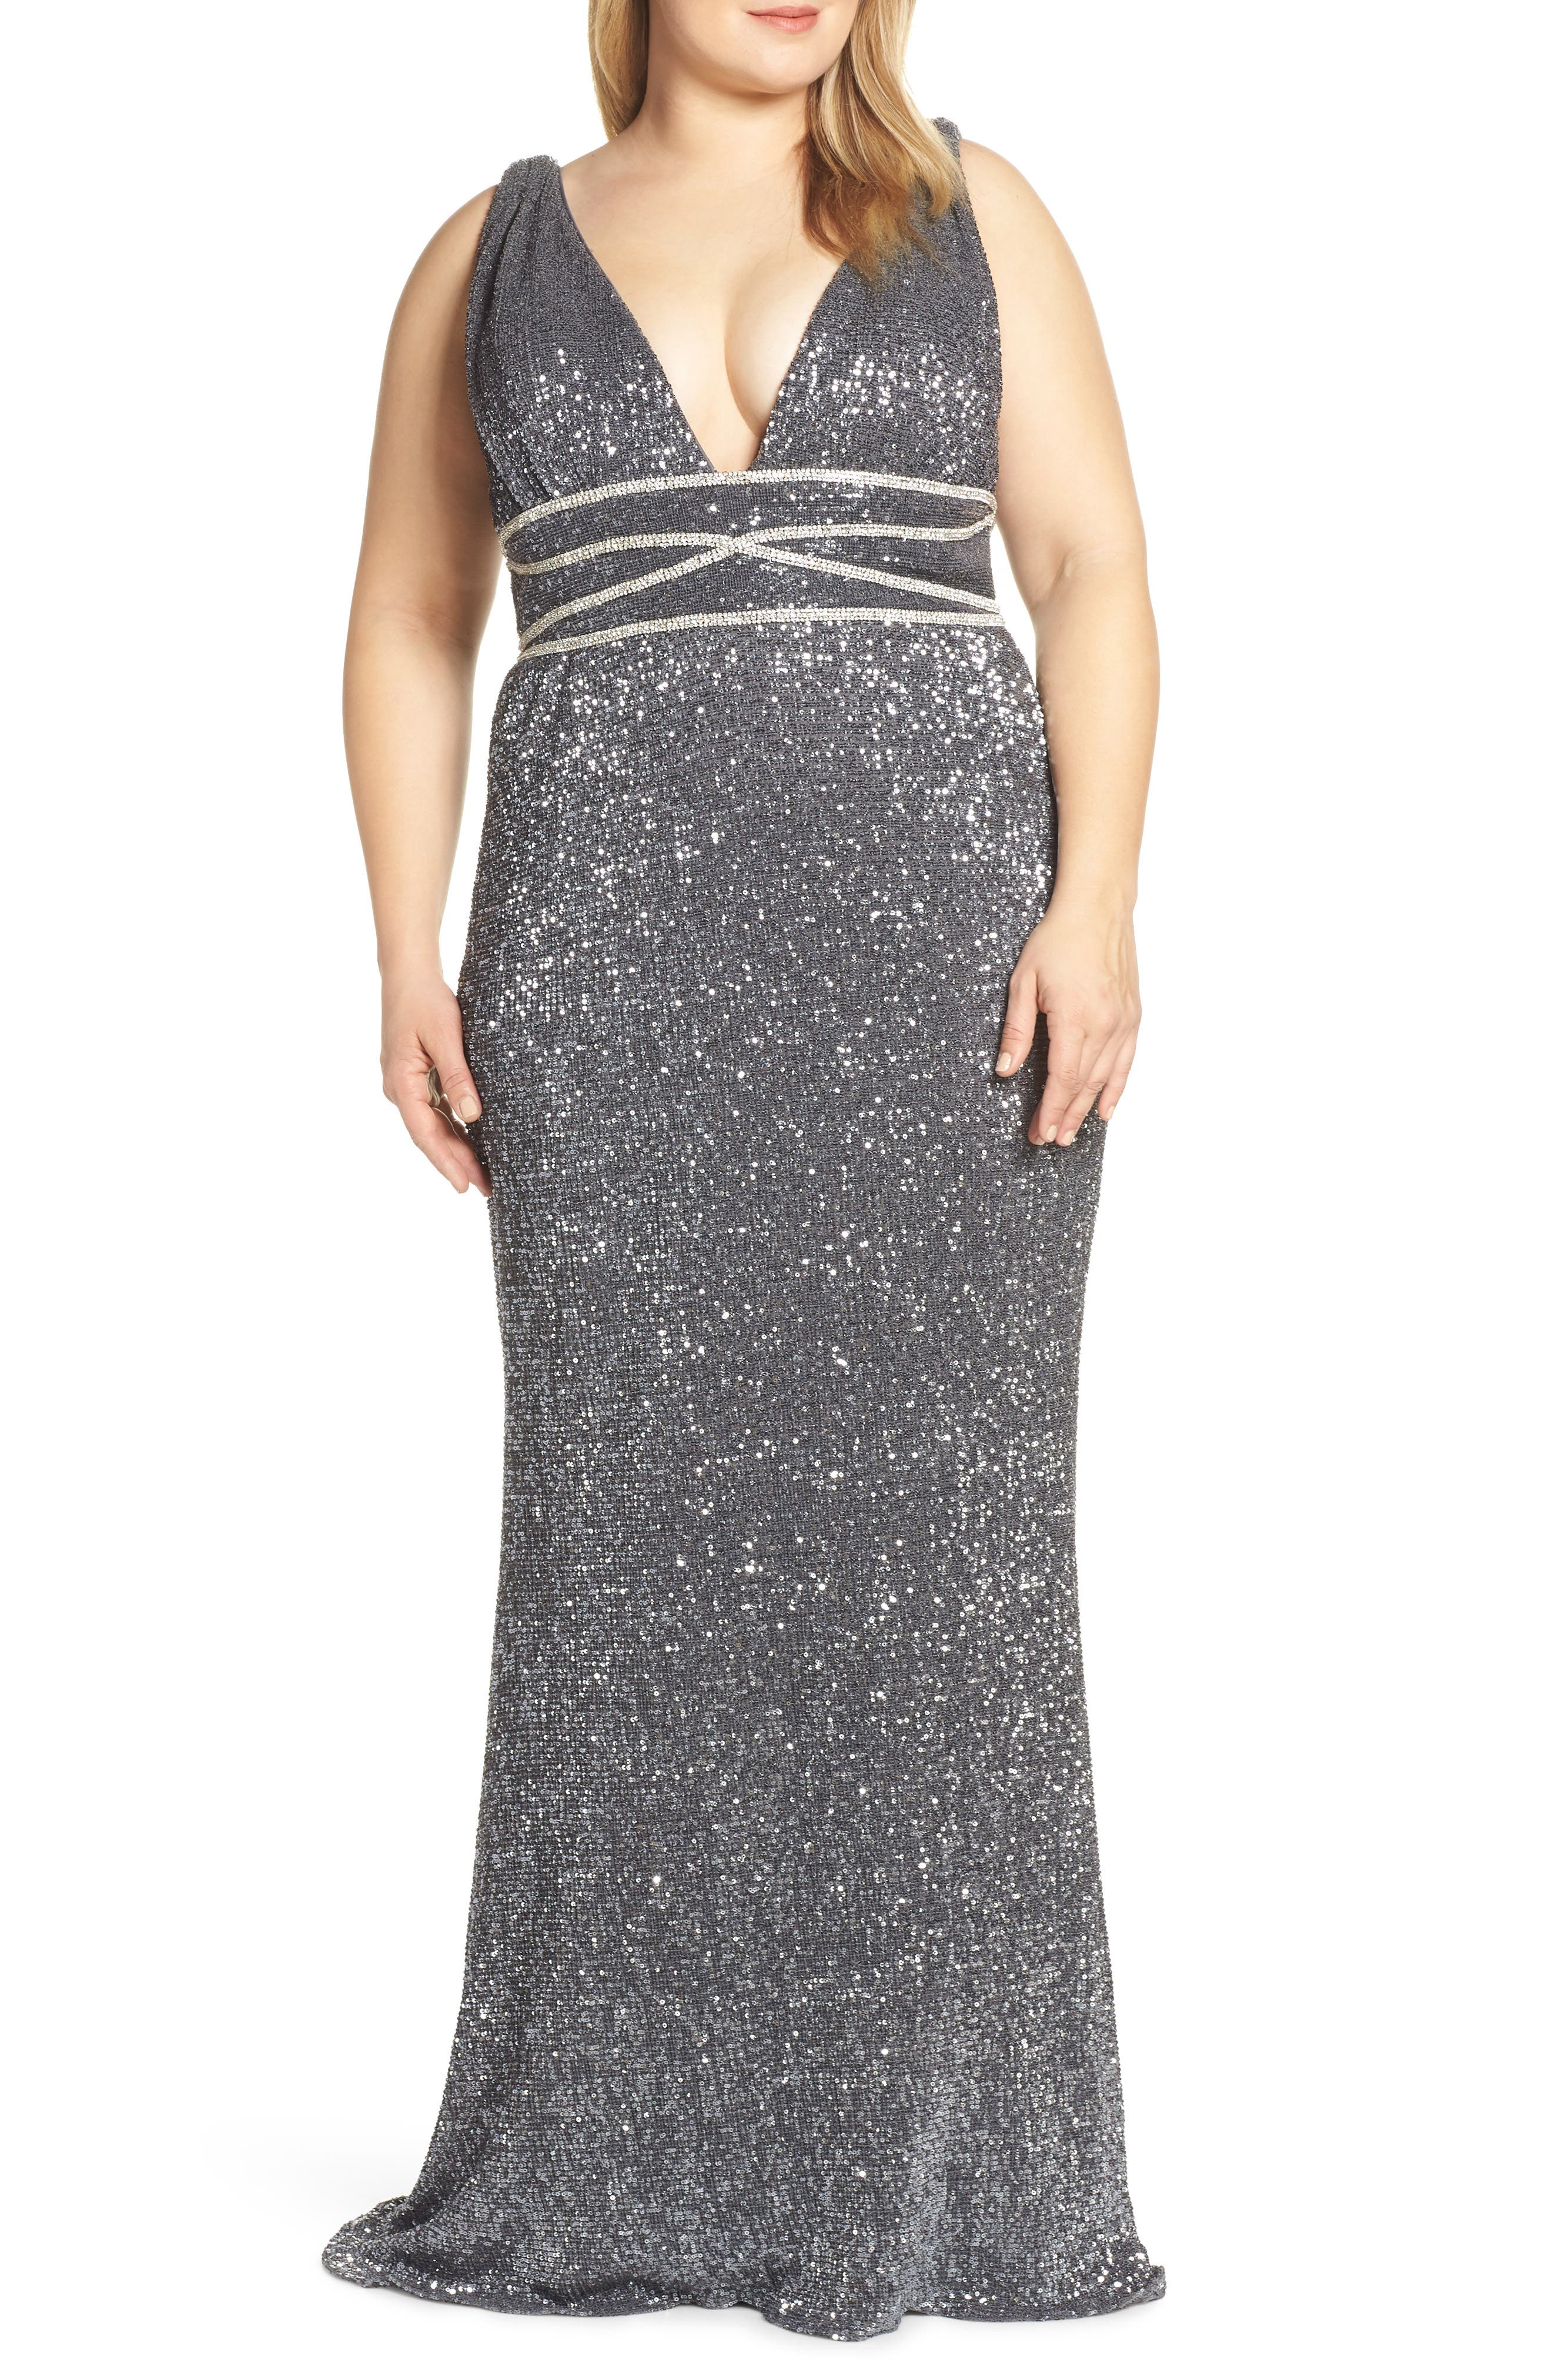 Plus Size MAC Duggal Beaded Waist Sequin Evening Dress, Grey